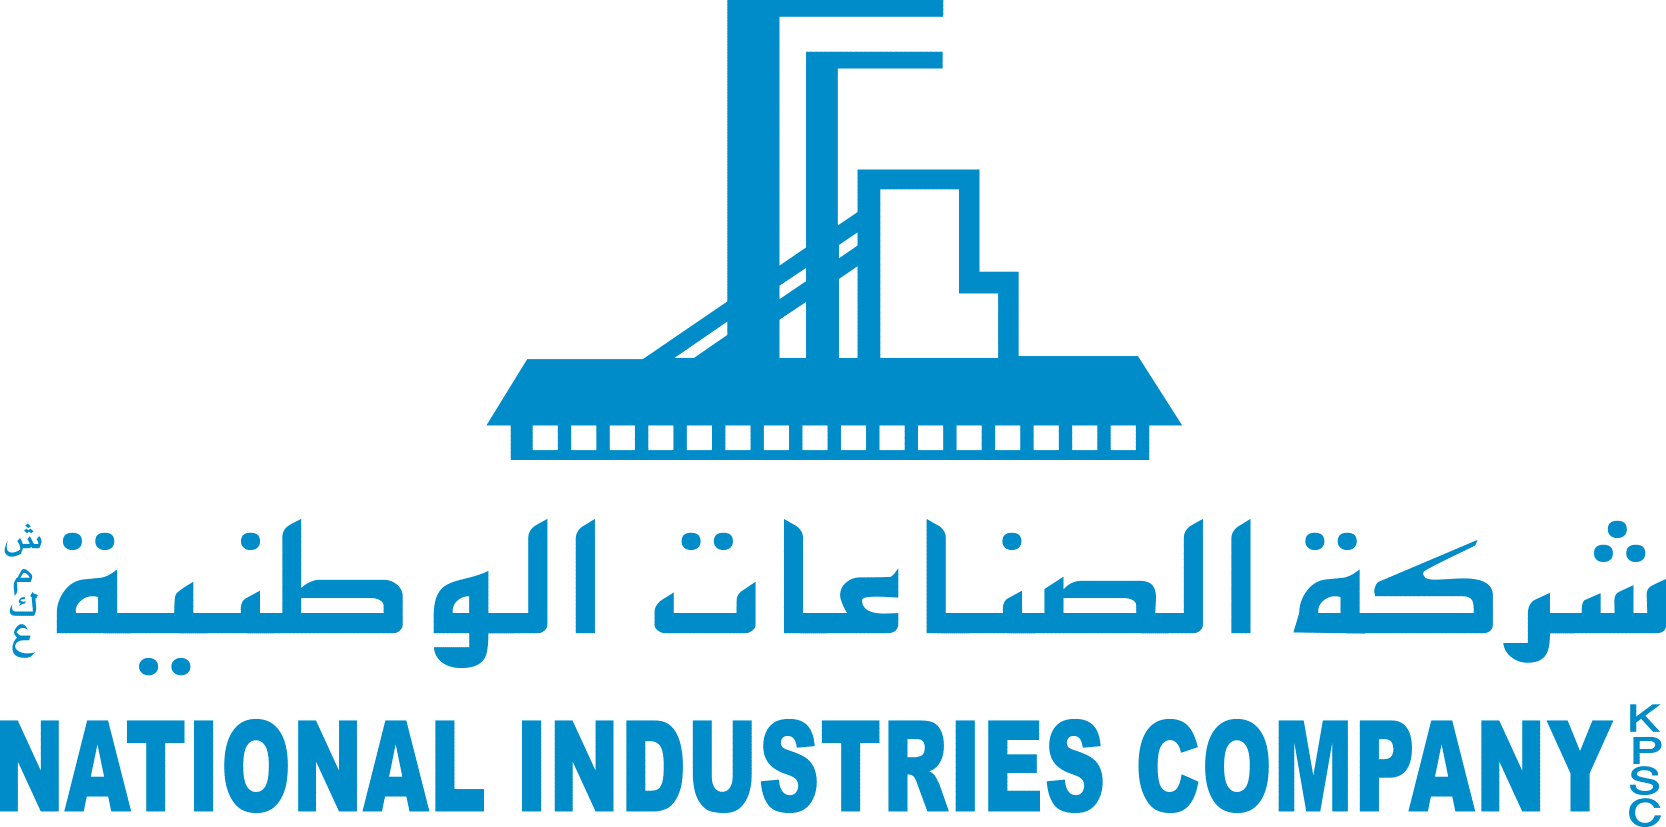 First RFID project in Kuwait for National Industries Company